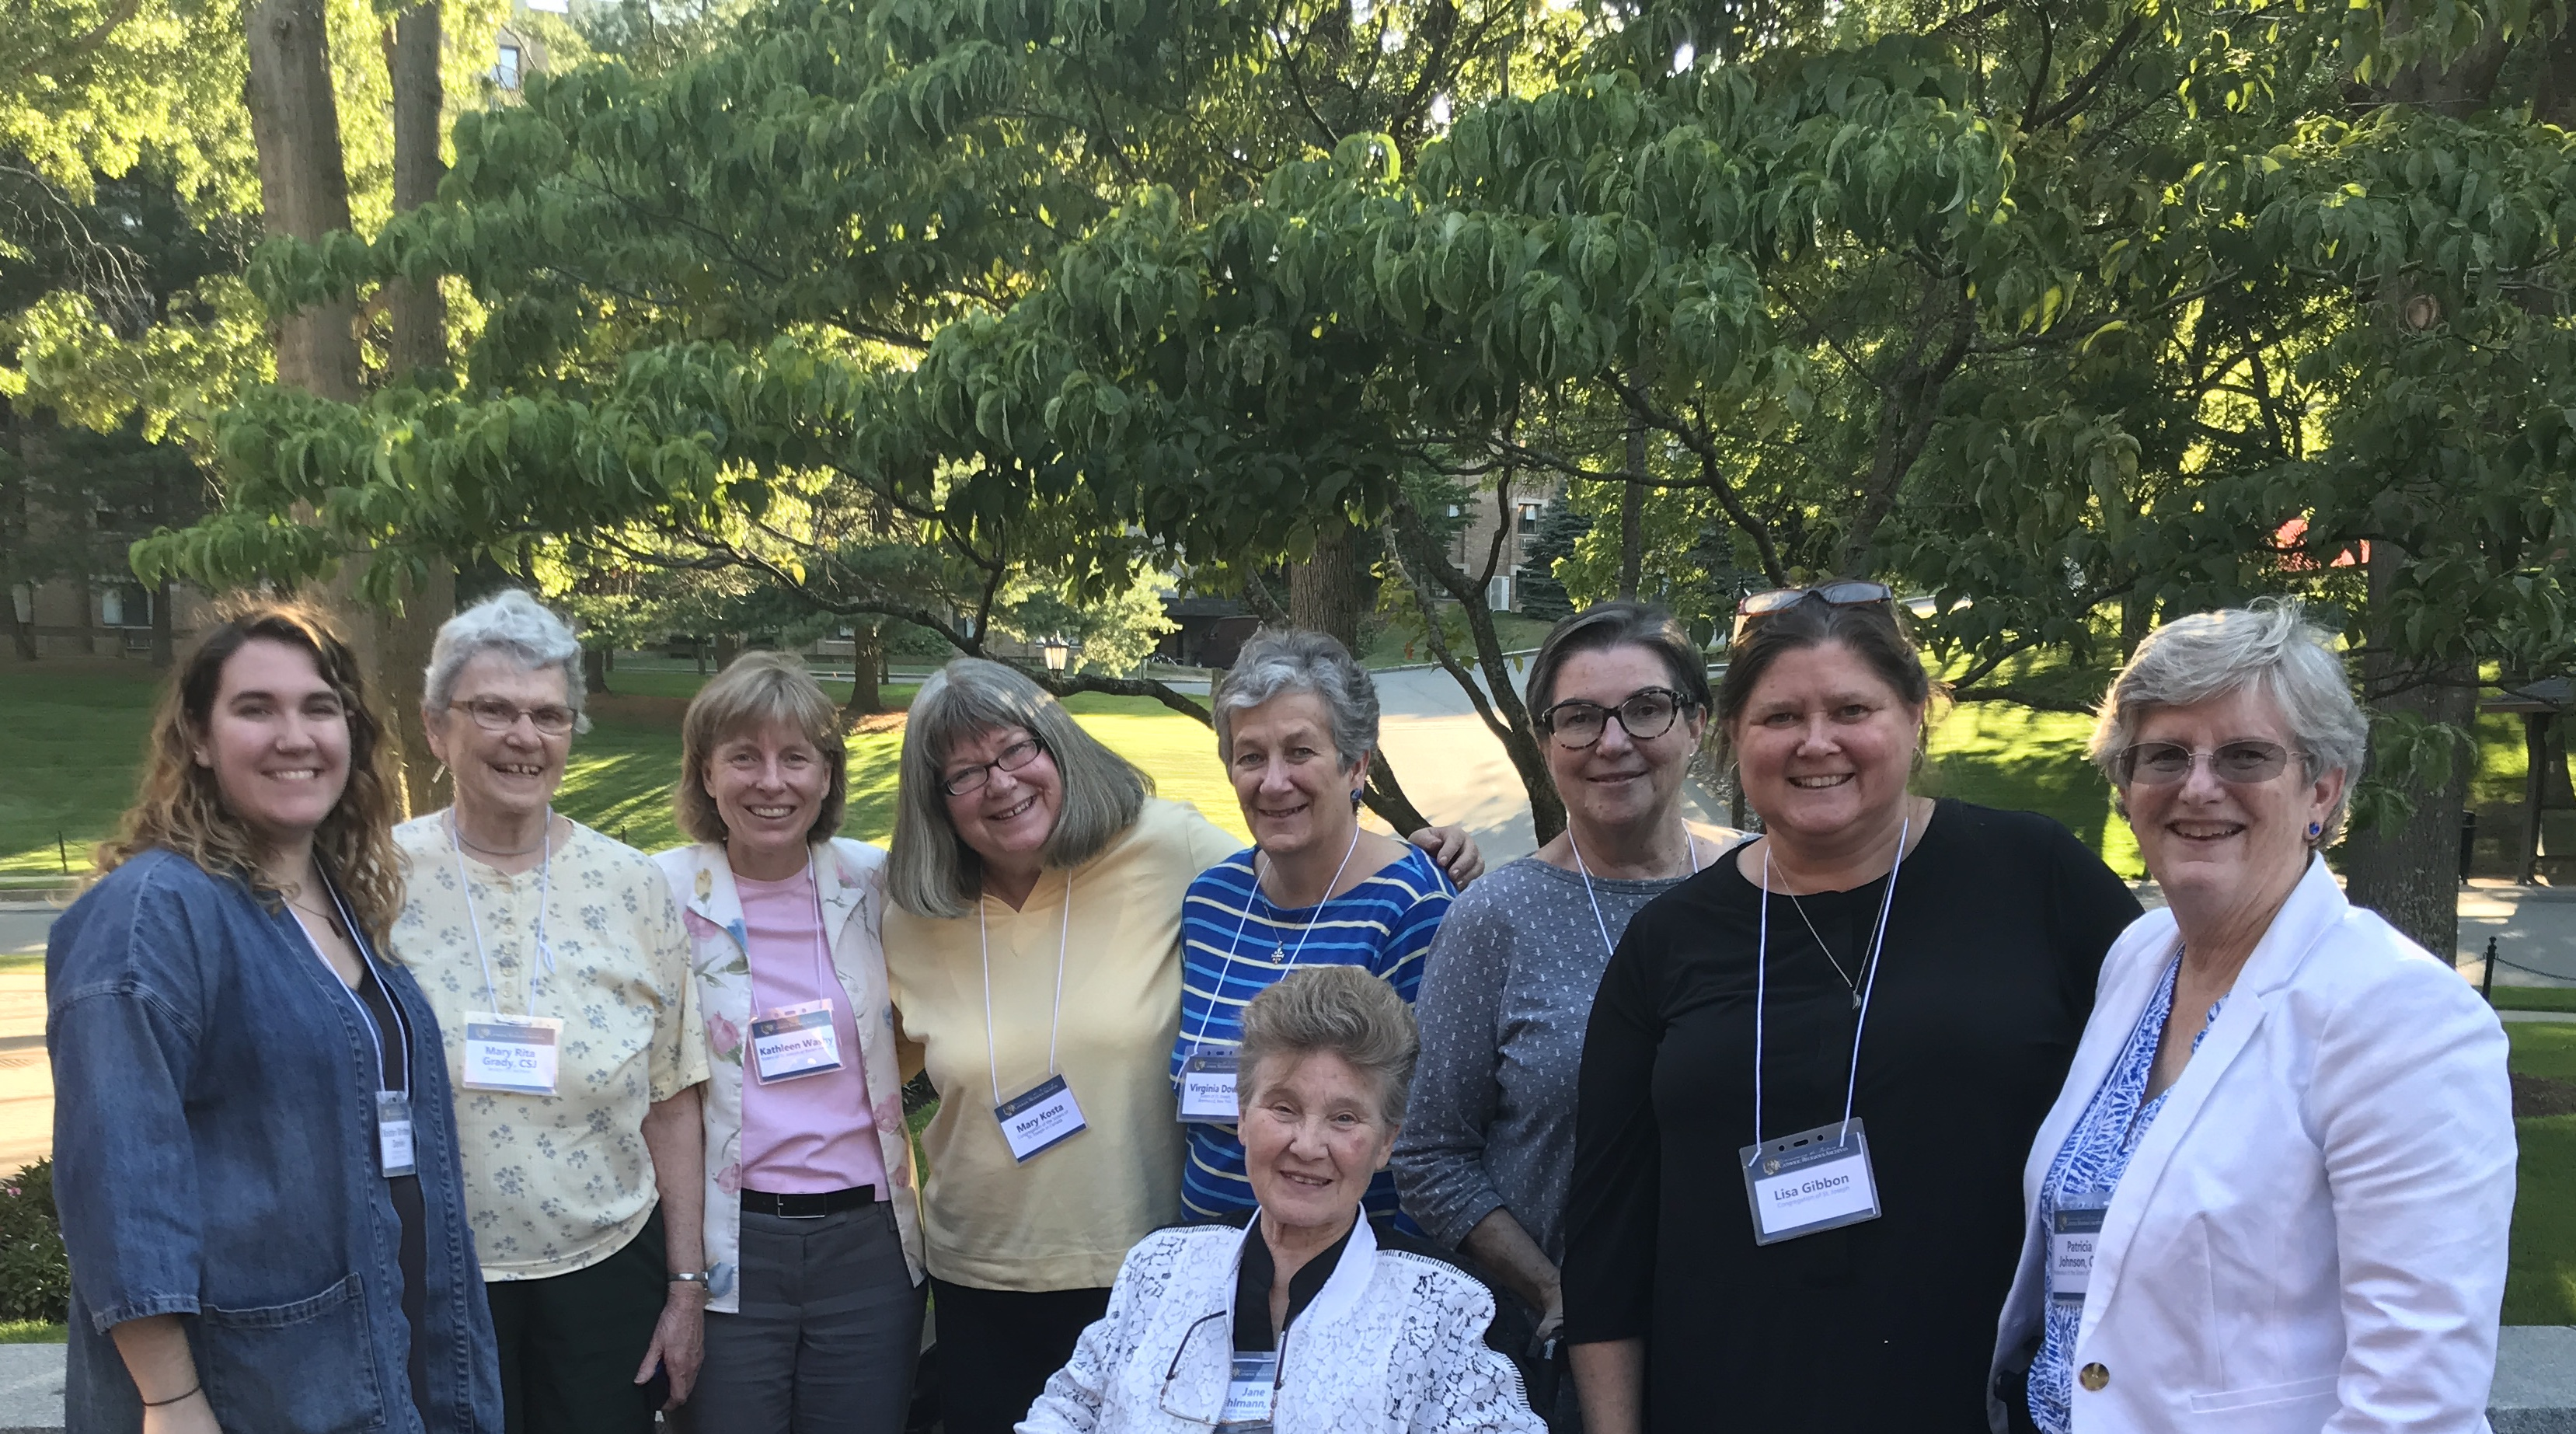 Archivists and leaders from across the U.S. and Canadian Federations of the Sisters of St. Joseph.